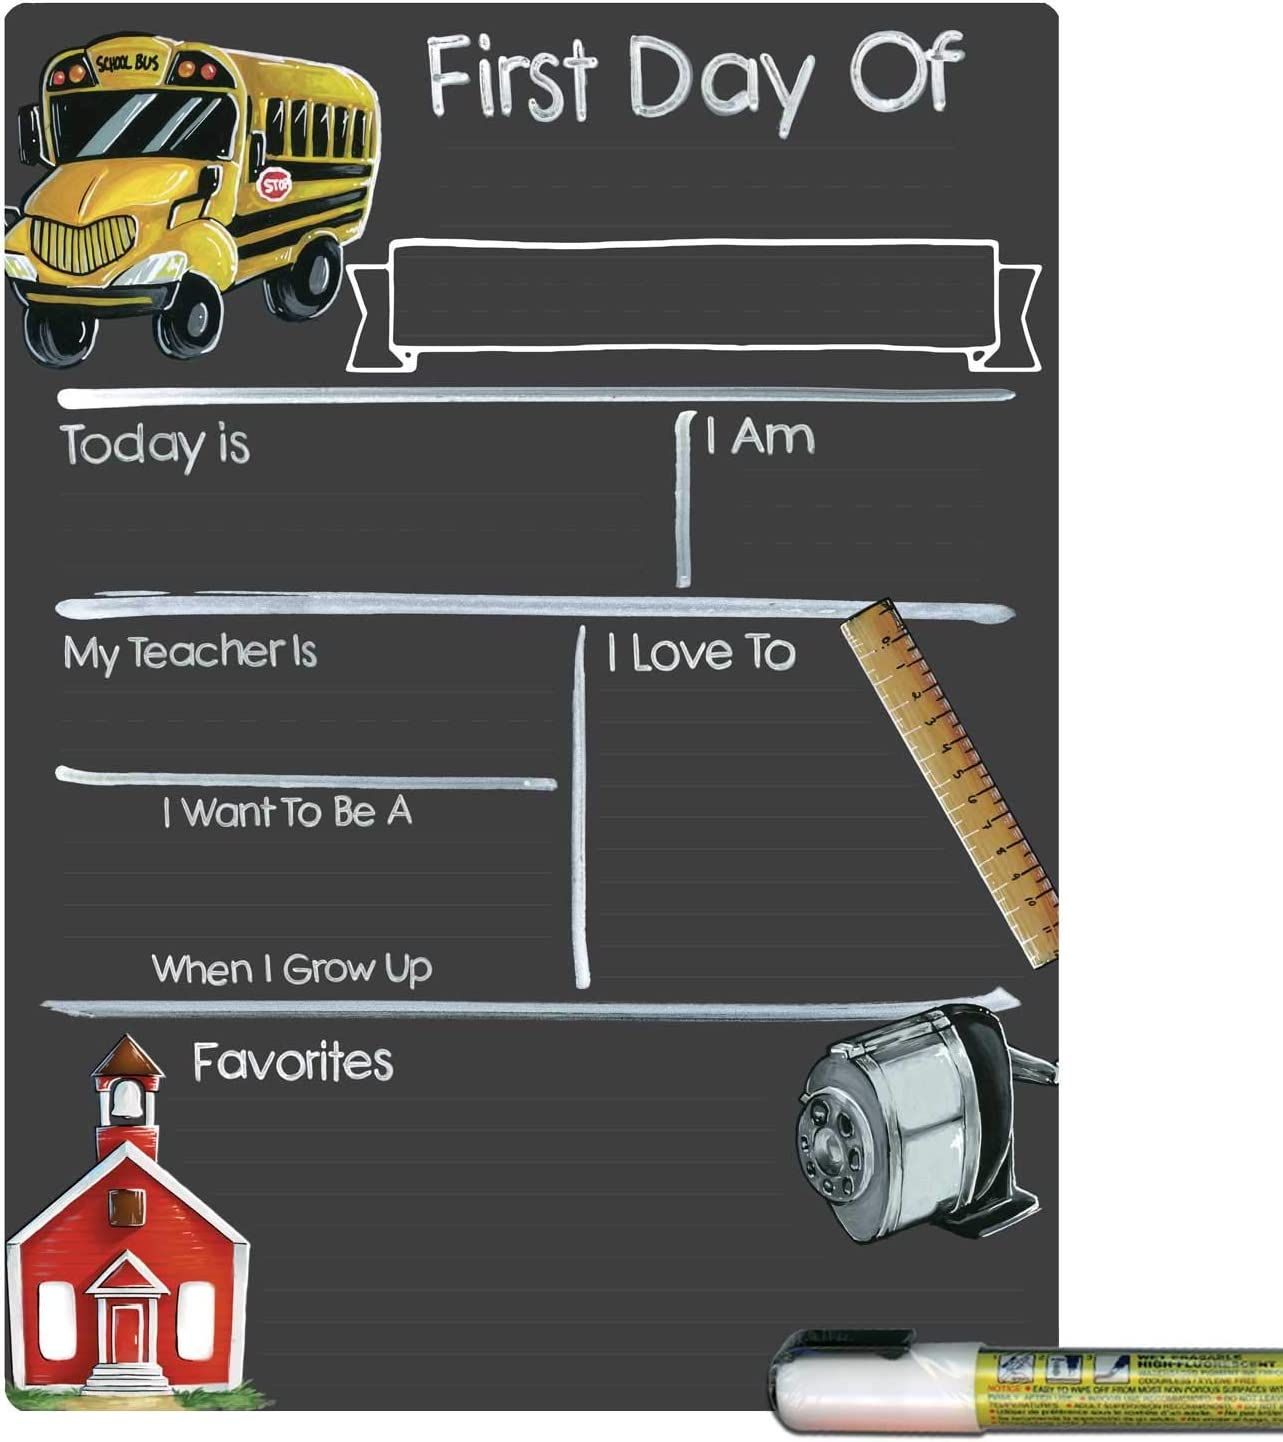 Cohas First Day of School Milestone Board with Schoolhouse Theme and Reusable Chalkboard Style Surface, 9 by 12 Inches, White Marker